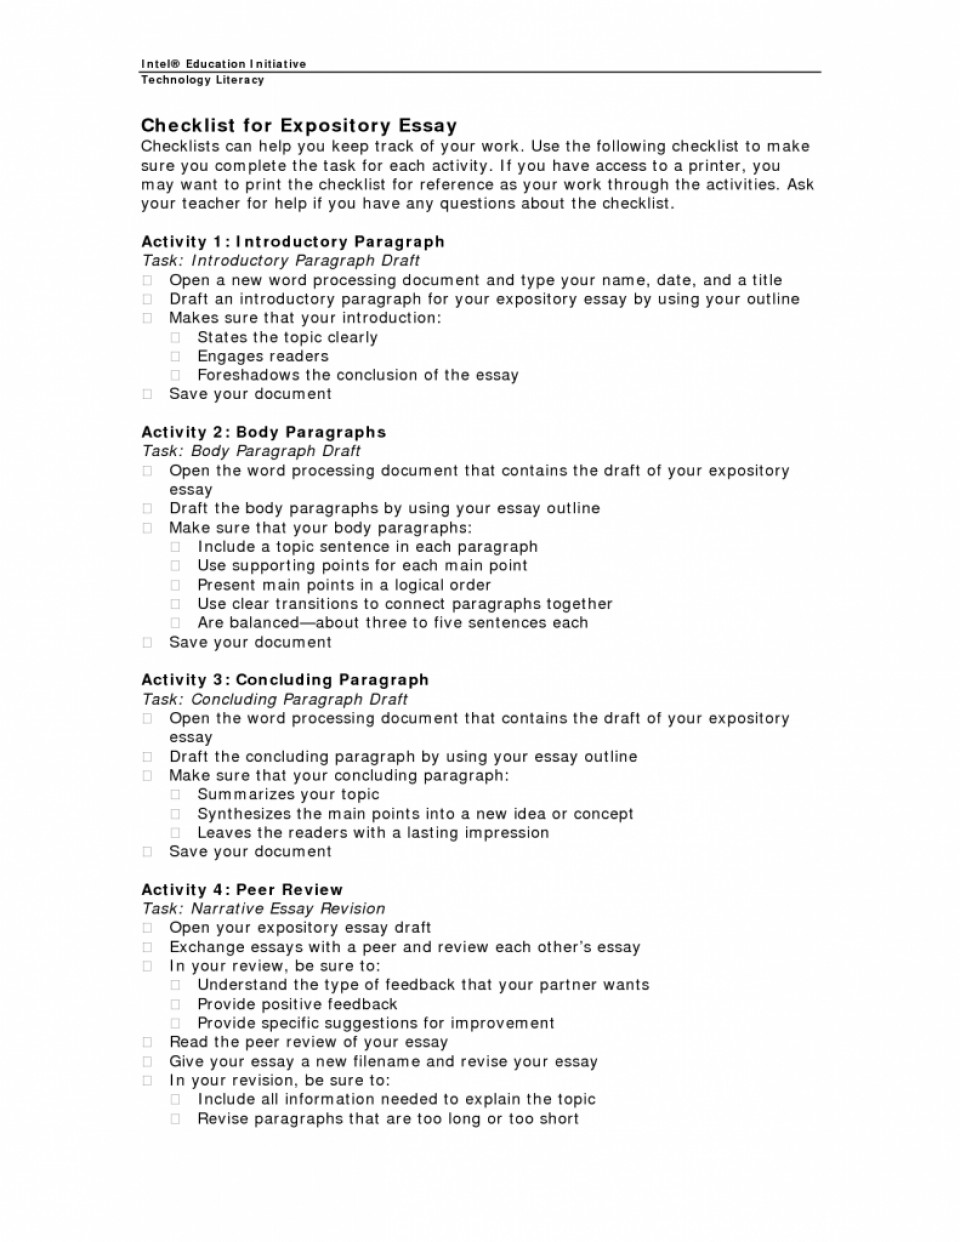 023 Expository Essay Checklist 791x1024 What Is An Magnificent Gcu Middle School Powerpoint 960